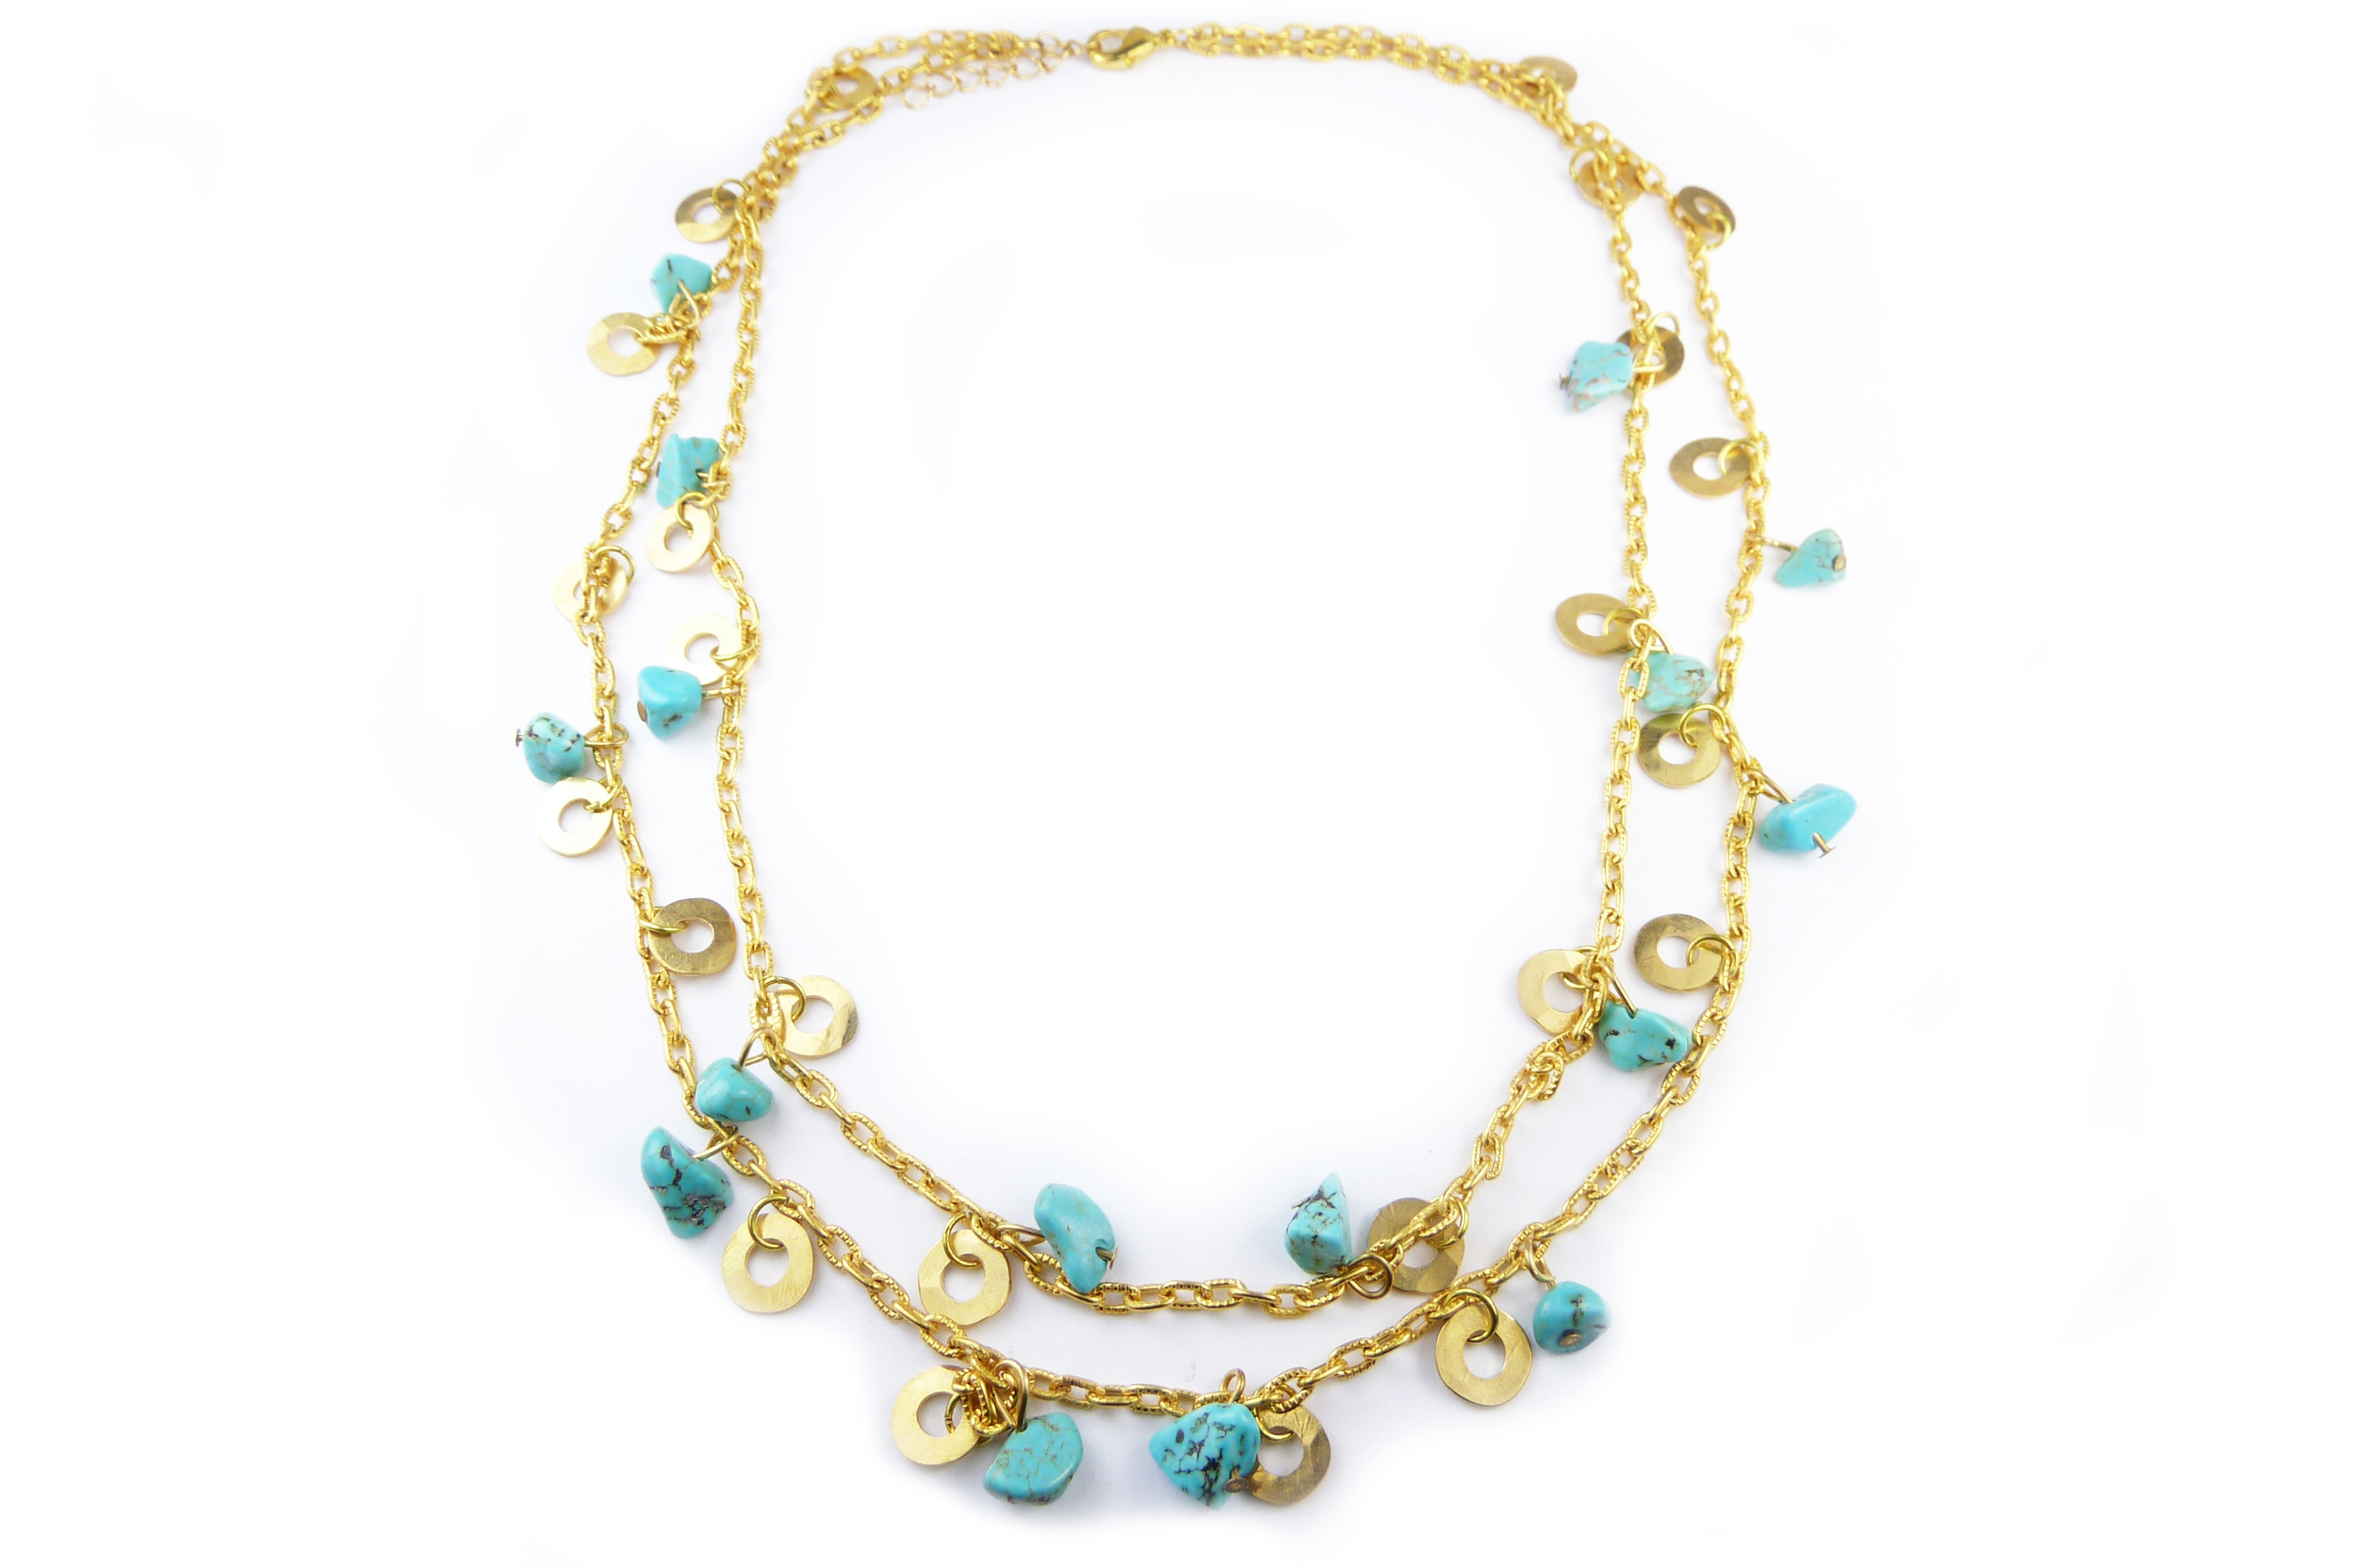 Turquoise and Washer  necklace, brass washers and turquoise pieces on gold-colored chain, $65